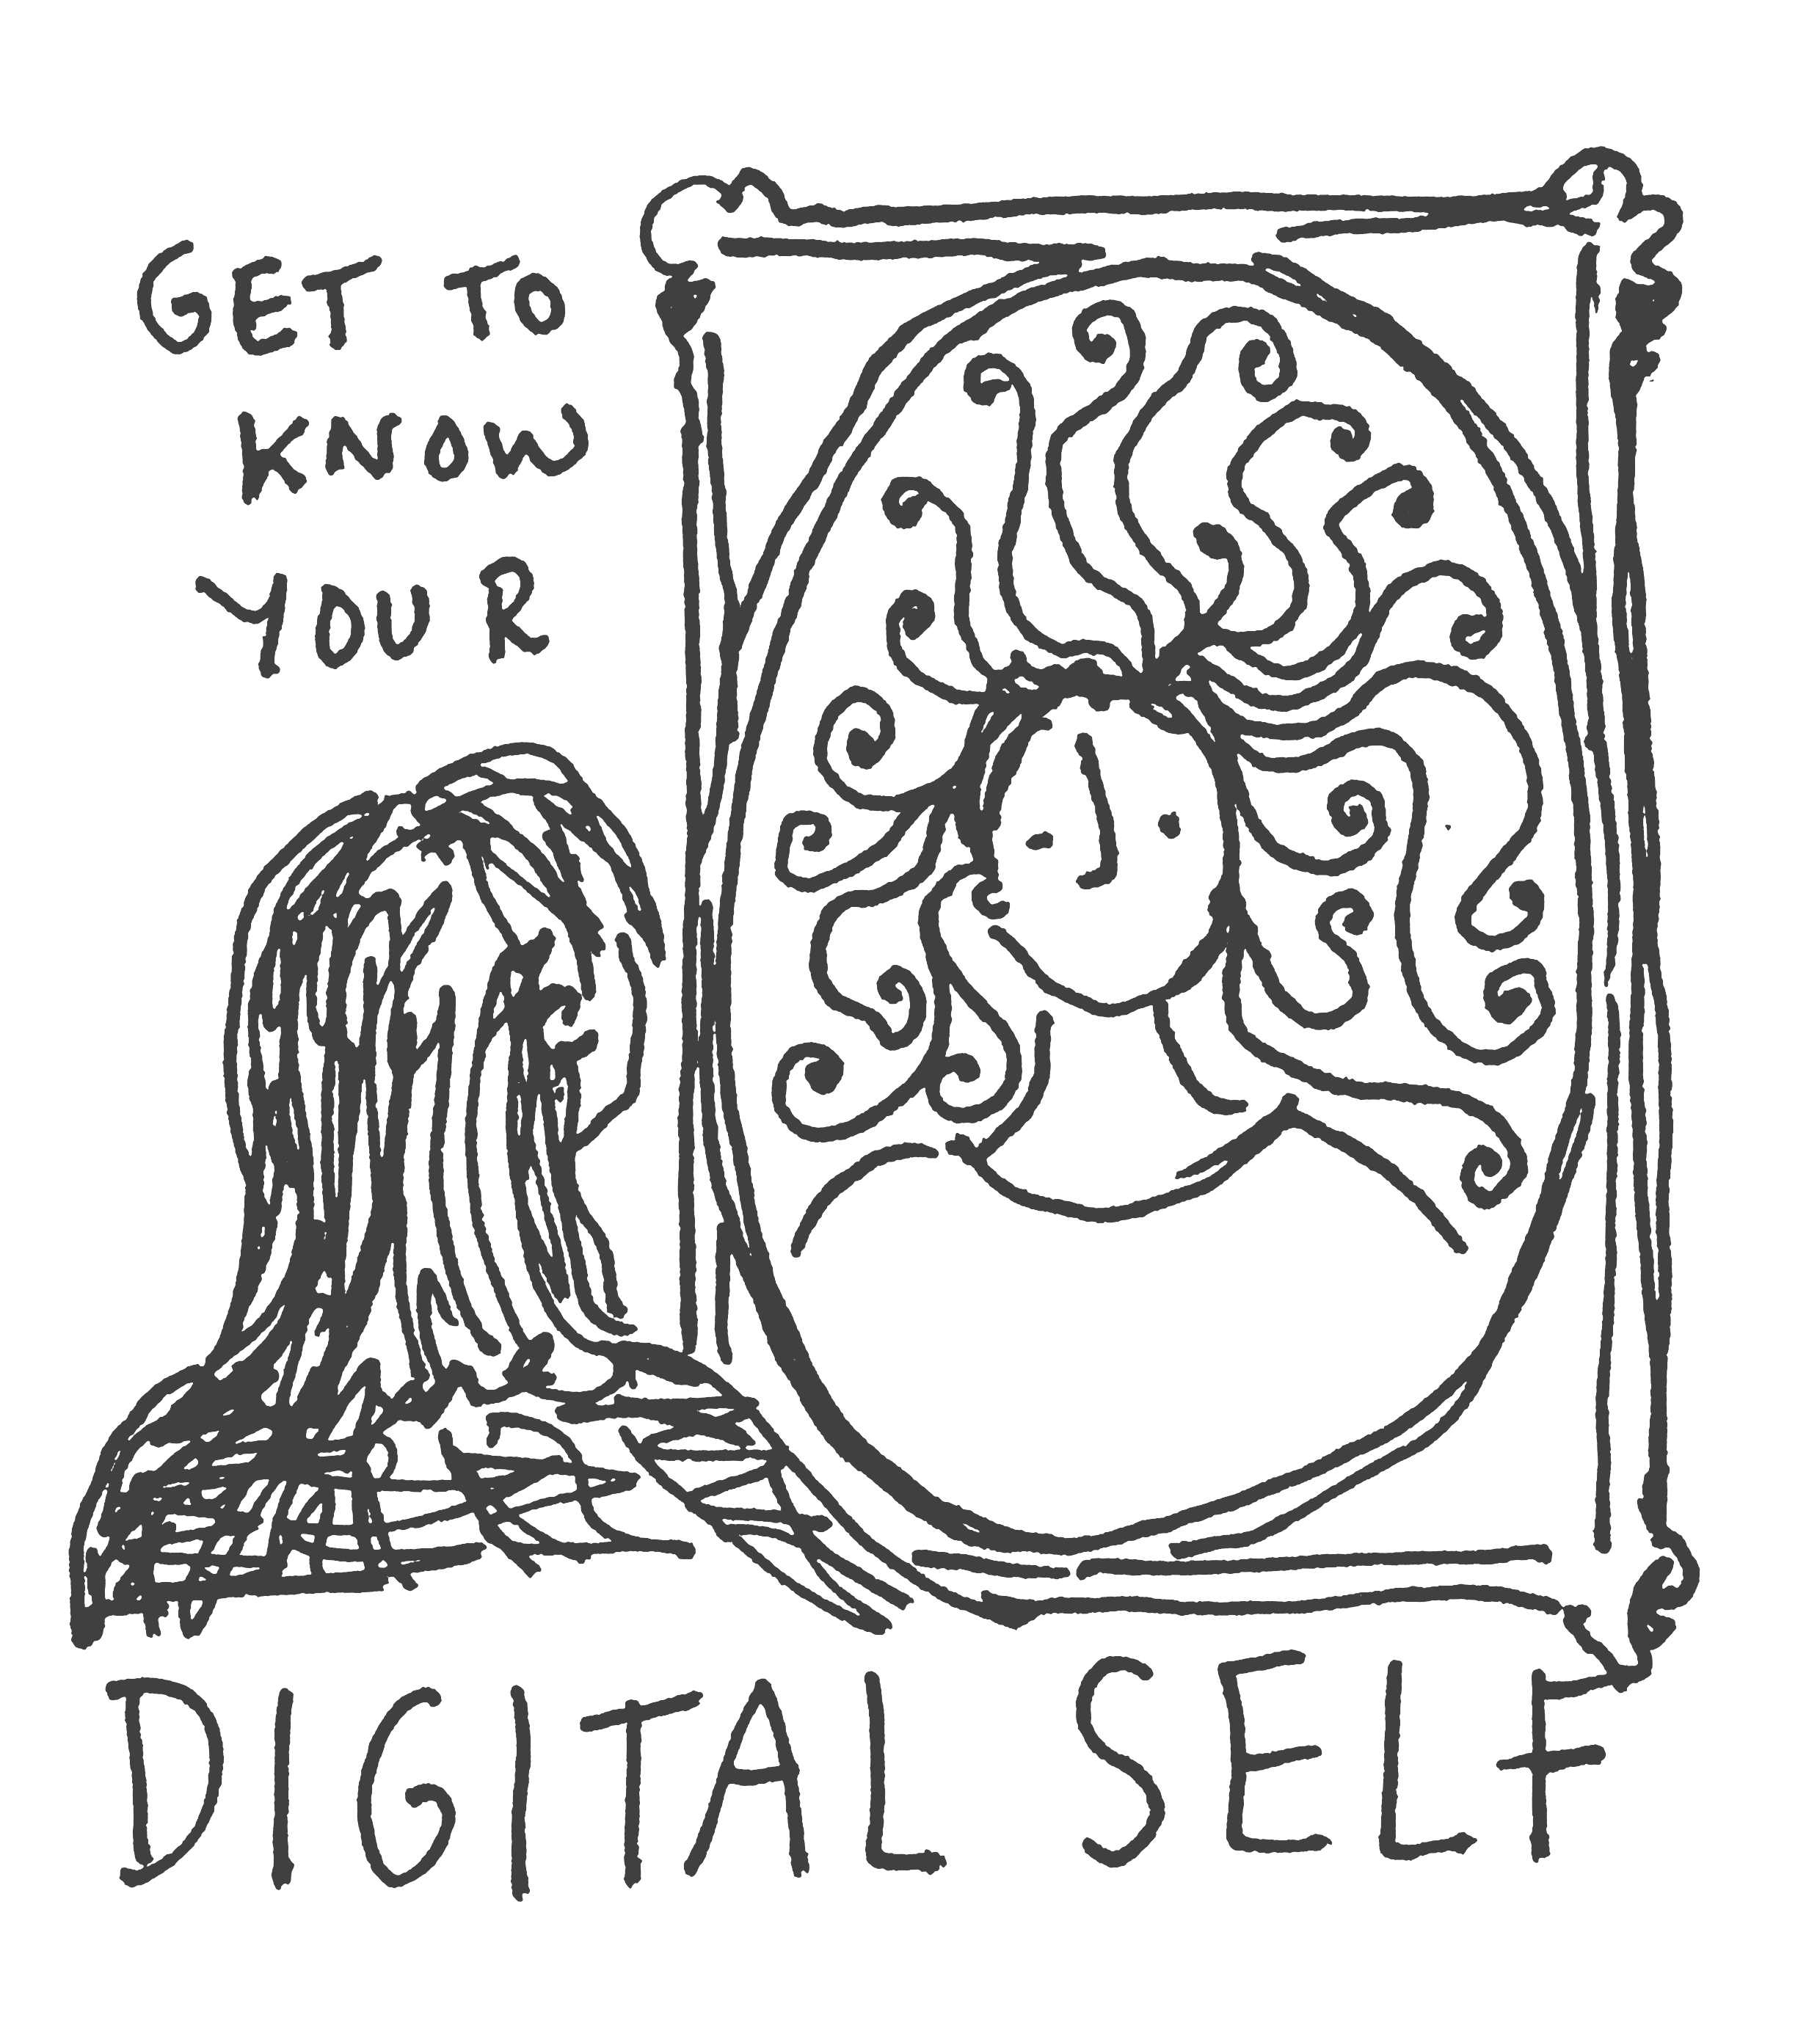 Get to know your digital self